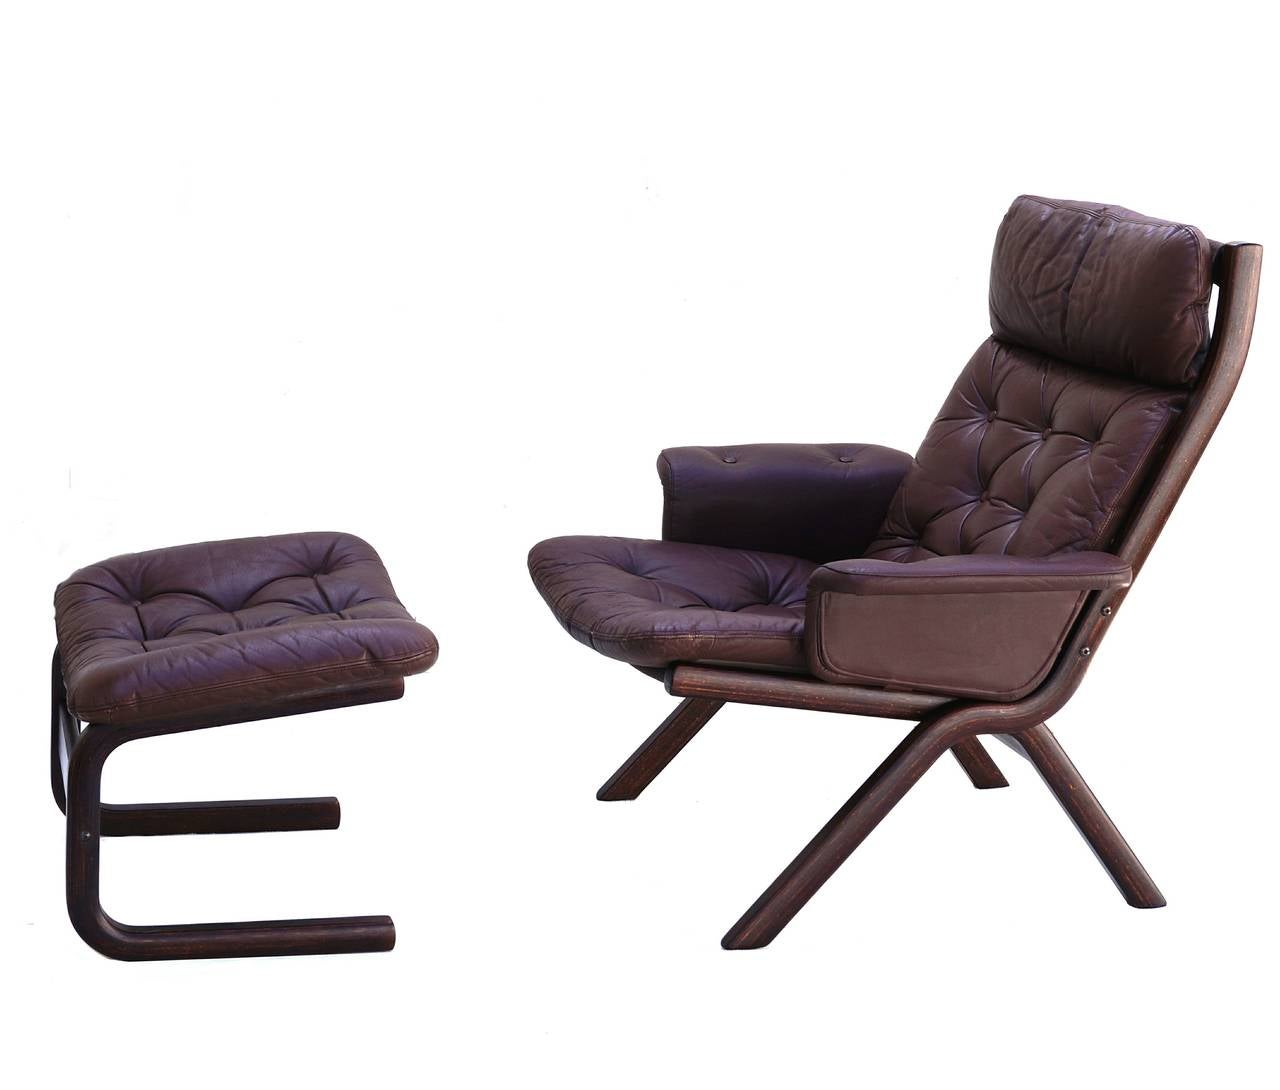 leather sling chairs small lounge danish modern sculptural chair and